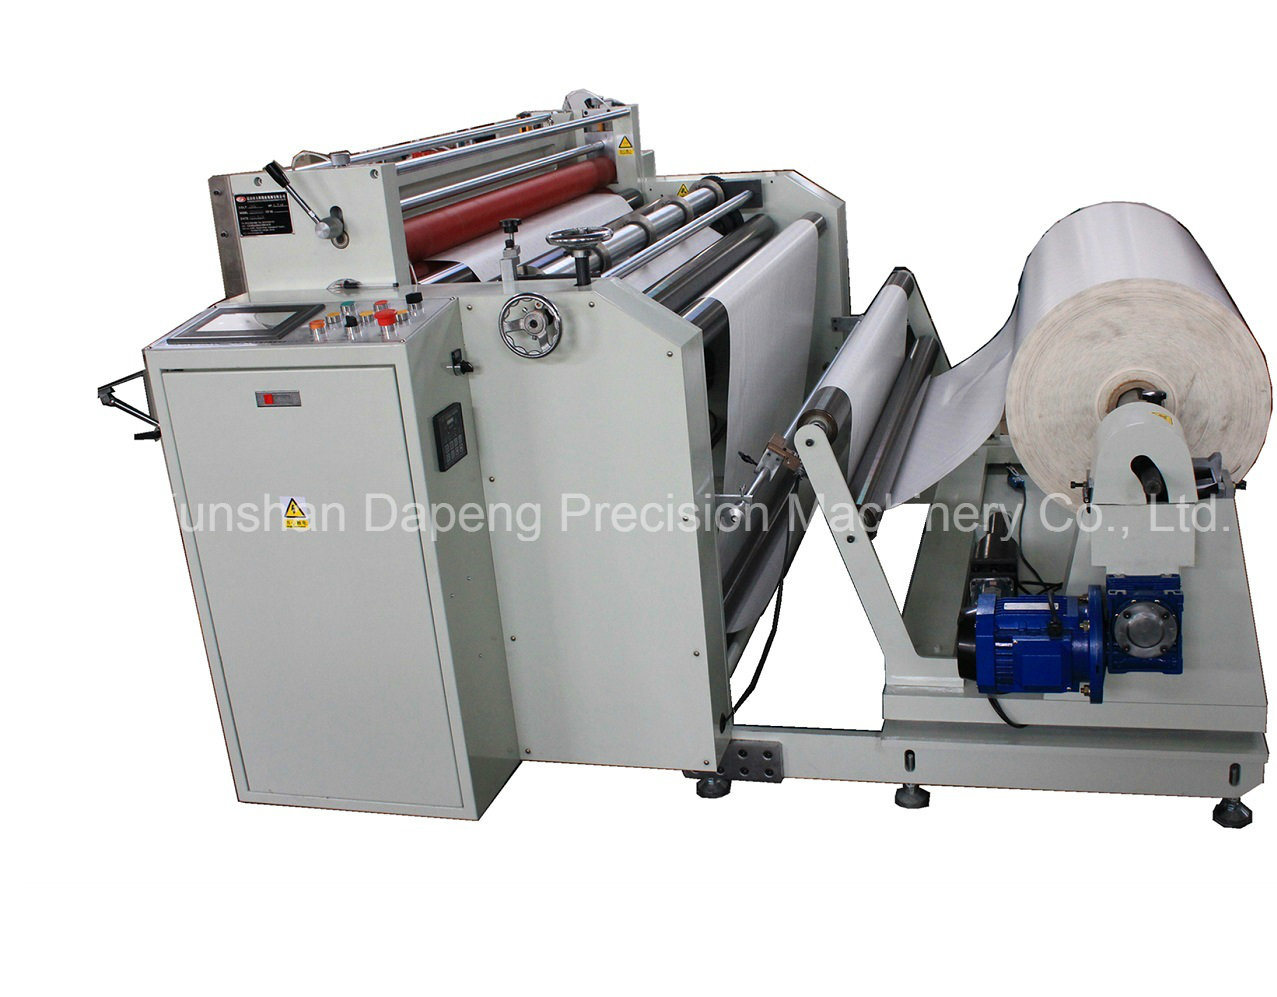 55 Inch Blade Paper Cross Cutting Machine